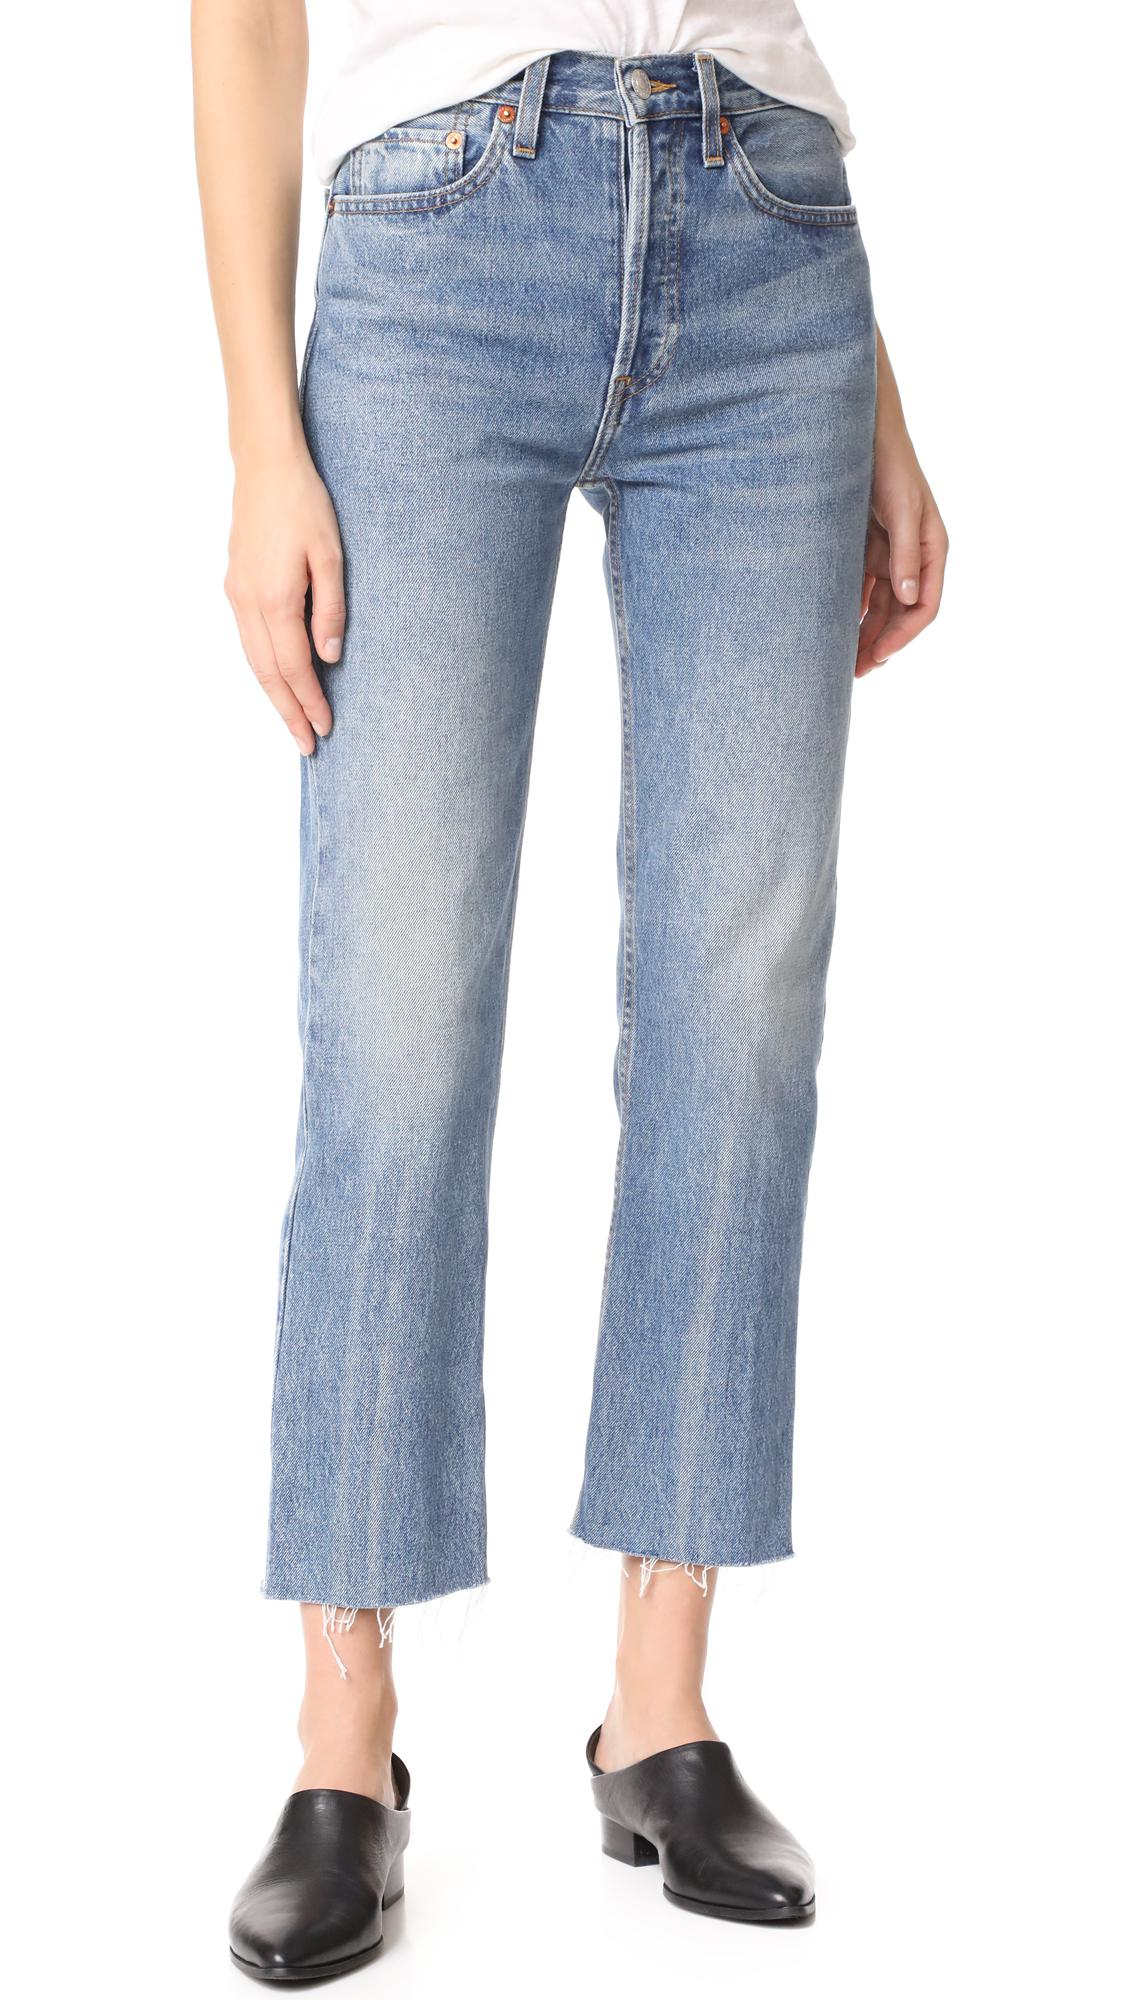 Clearance Buy Cheap View Womens High Rise Stovepipe Jeans Re/Done Pre Order For Sale Latest Collections Cheap Eastbay CYm3oYG